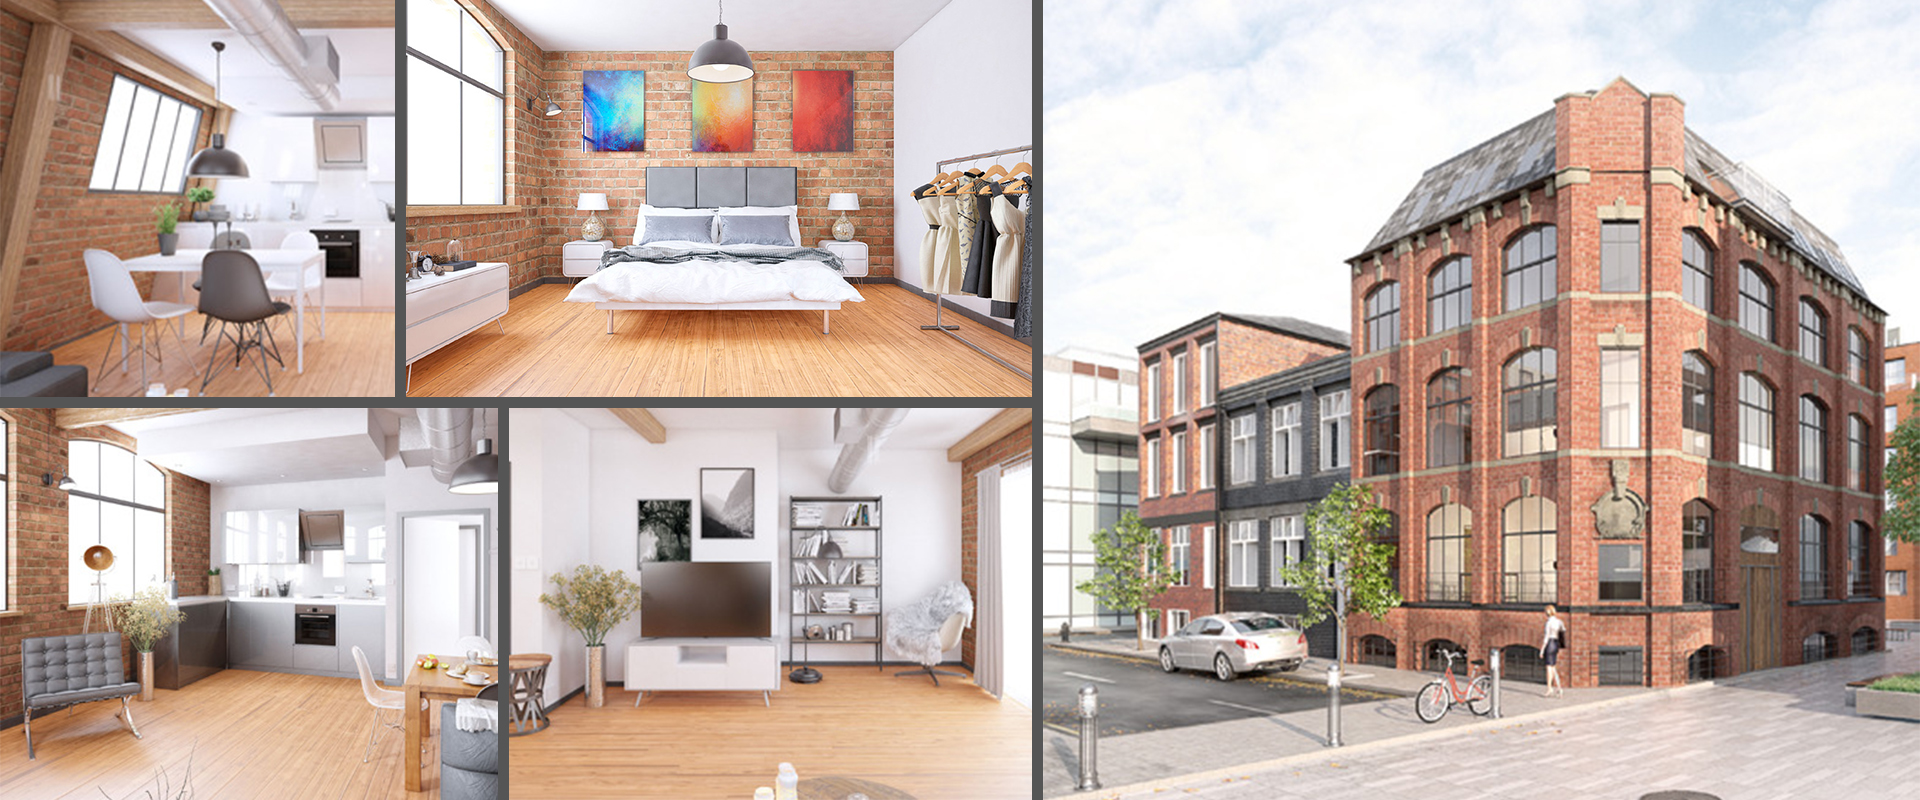 Manchester - Guide Price from: £158,340 - 6% rental income (SOLD OUT))